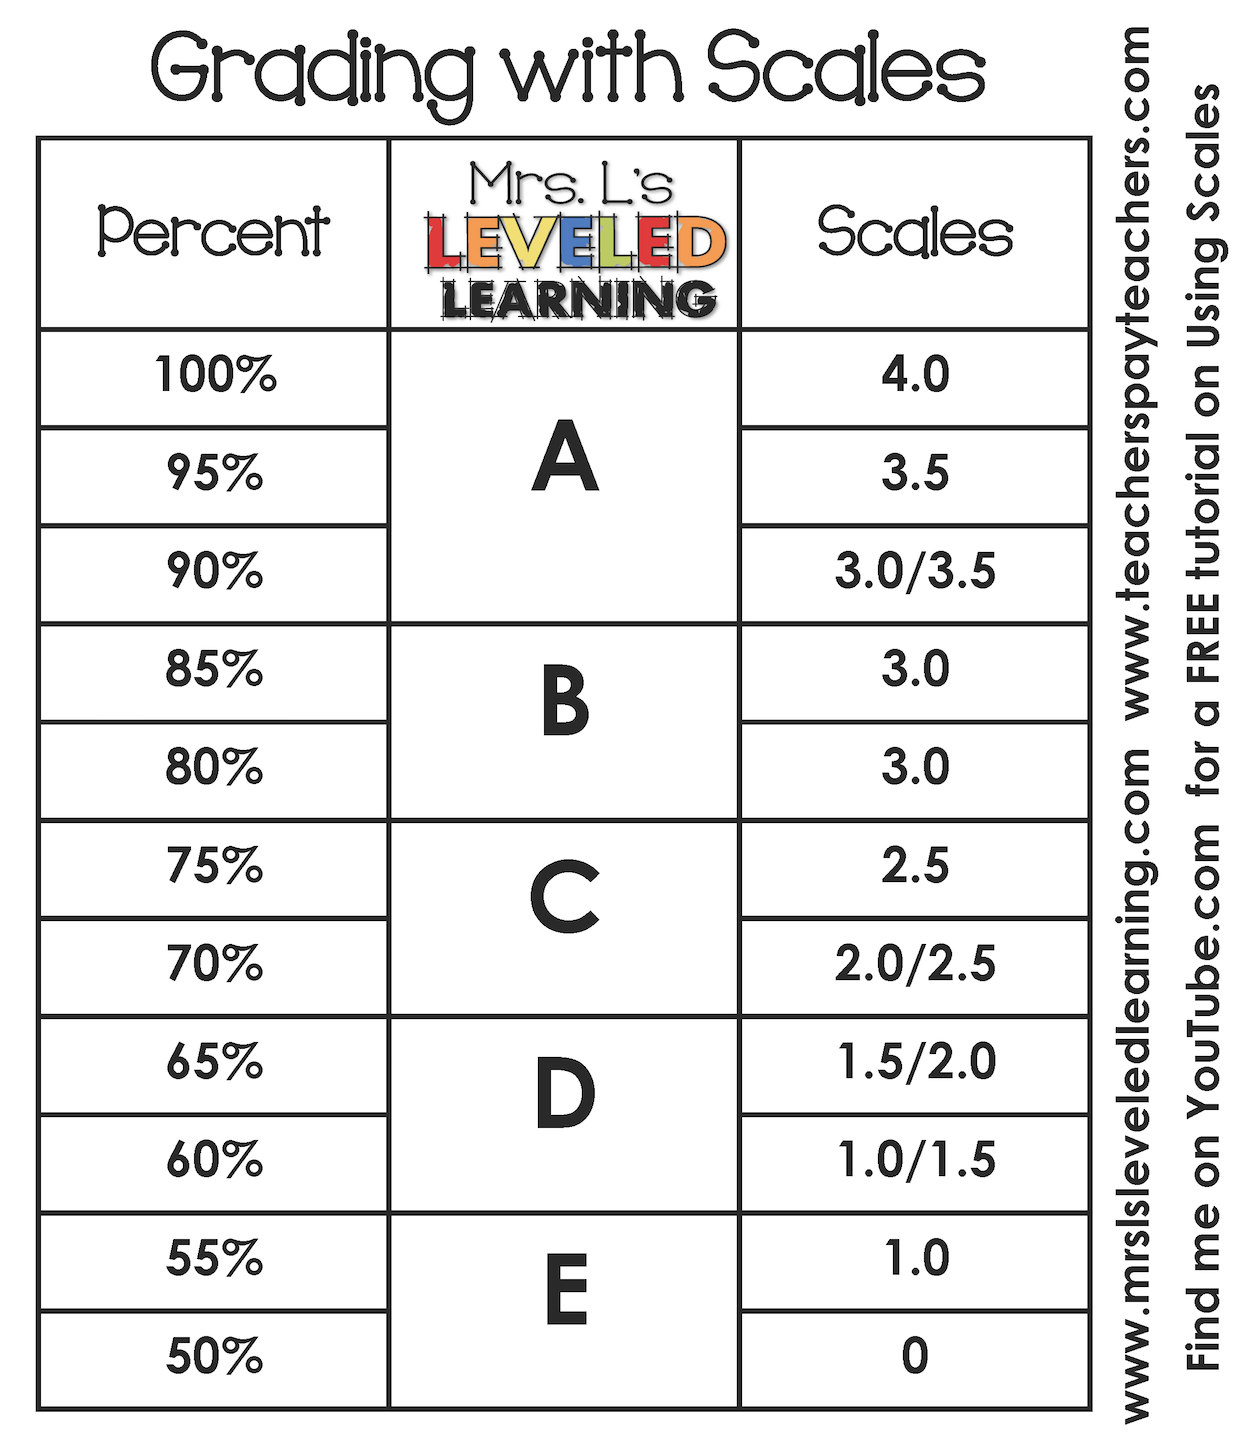 Grading with Scales | Classroom ideas, Classroom management and ...